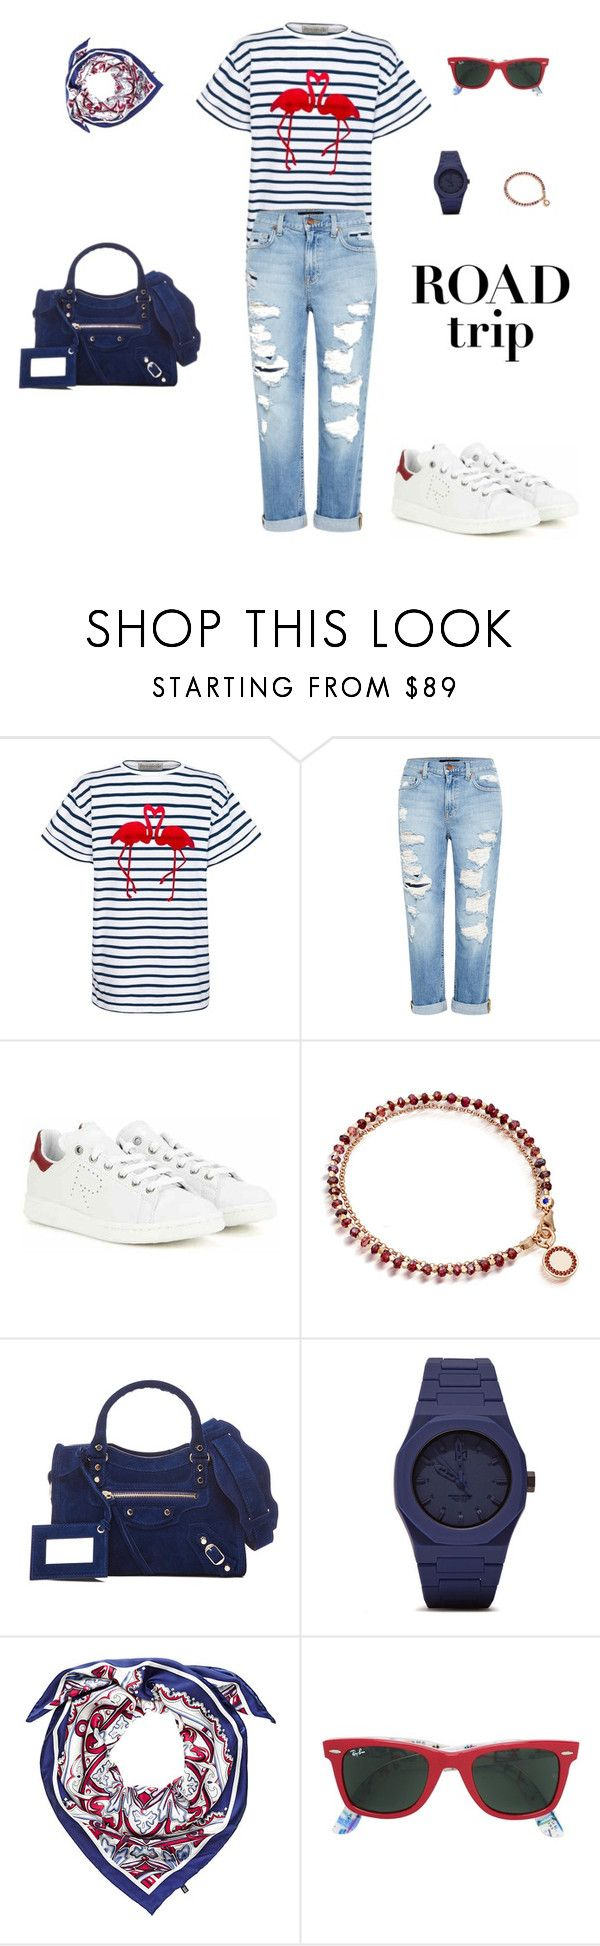 """Road Trippin"" by sebolita ❤ liked on Polyvore featuring Être Cécile, Genetic Denim, adidas, Astley Clarke, Balenciaga, CC, Hahn, Ray-Ban, roadtrip and contestentry"